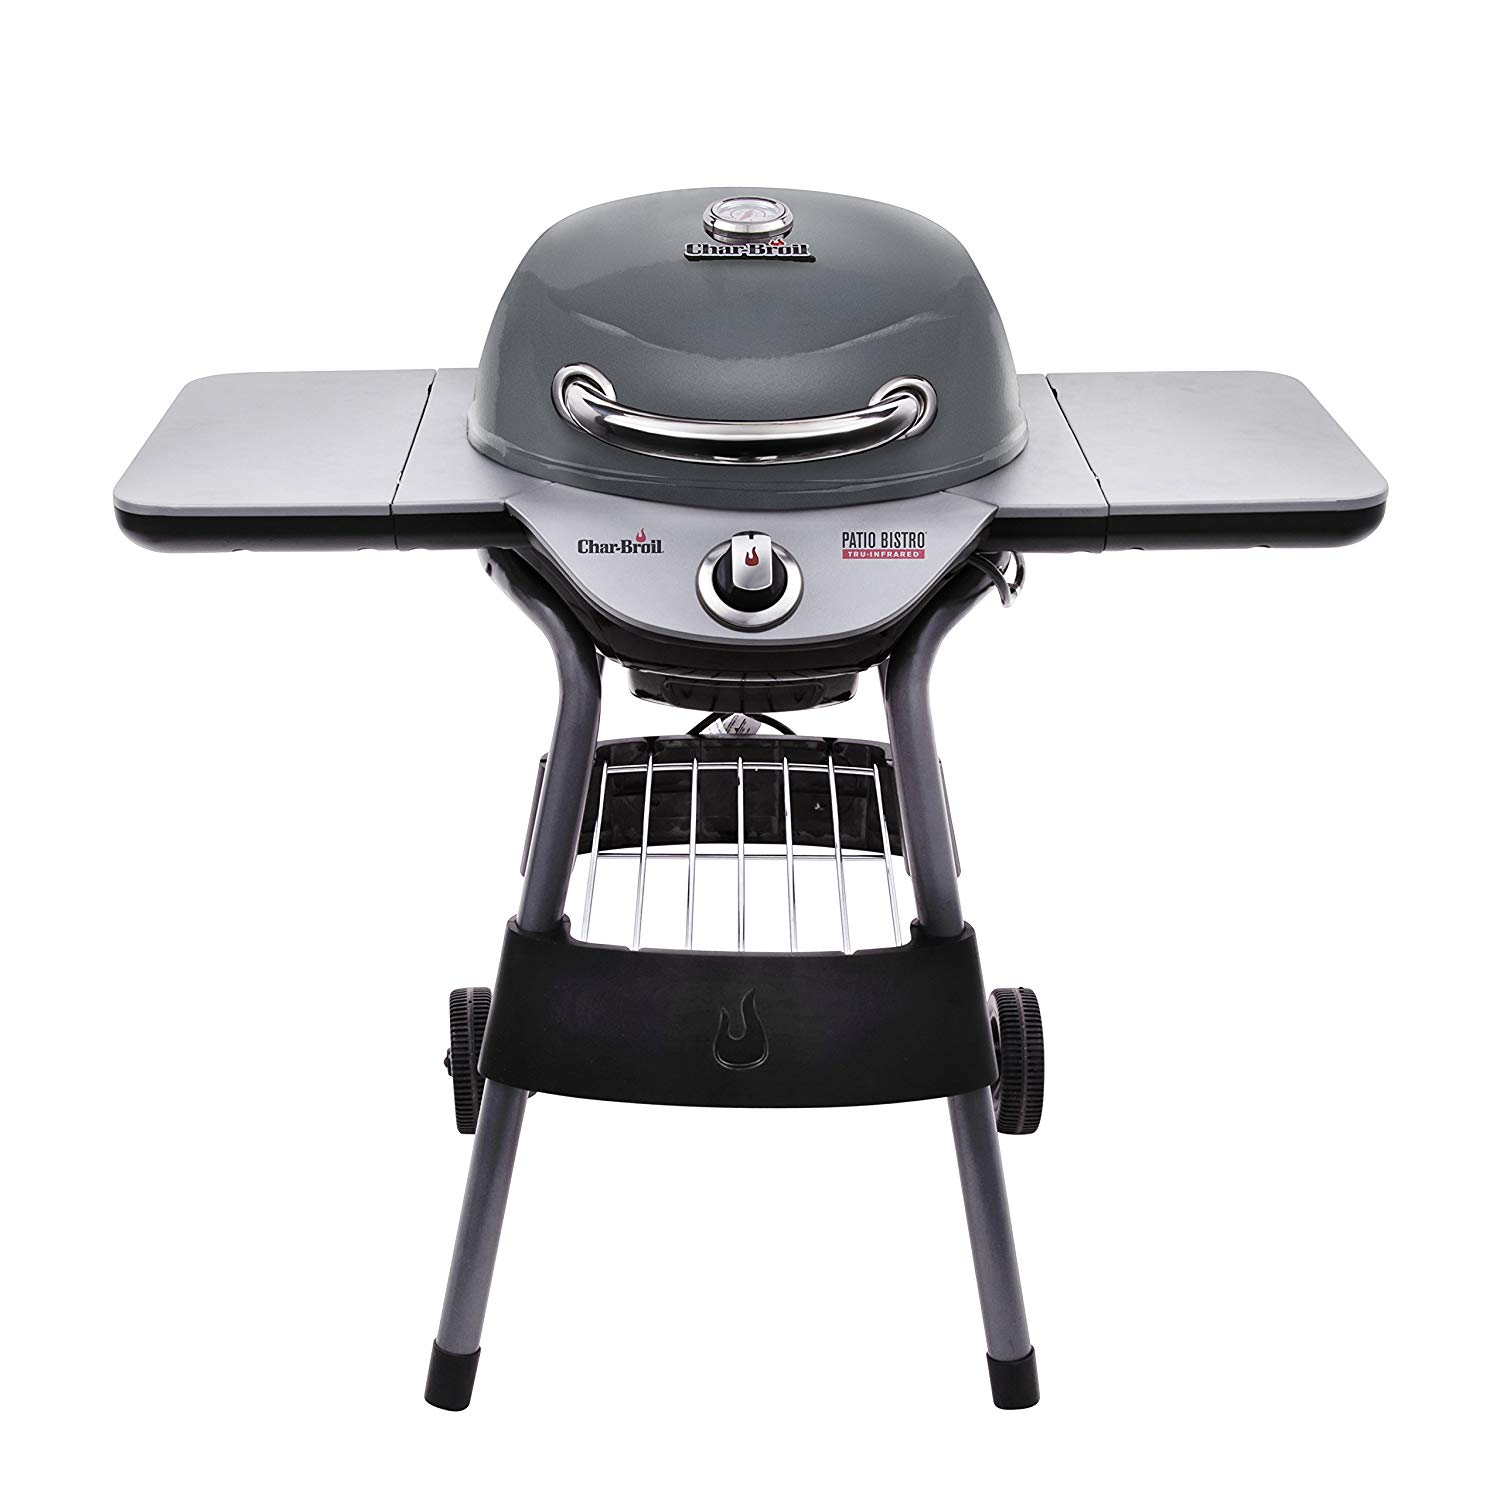 Barbecues & Smokers Portable Barbecues BBQ Grill for Home Party ...